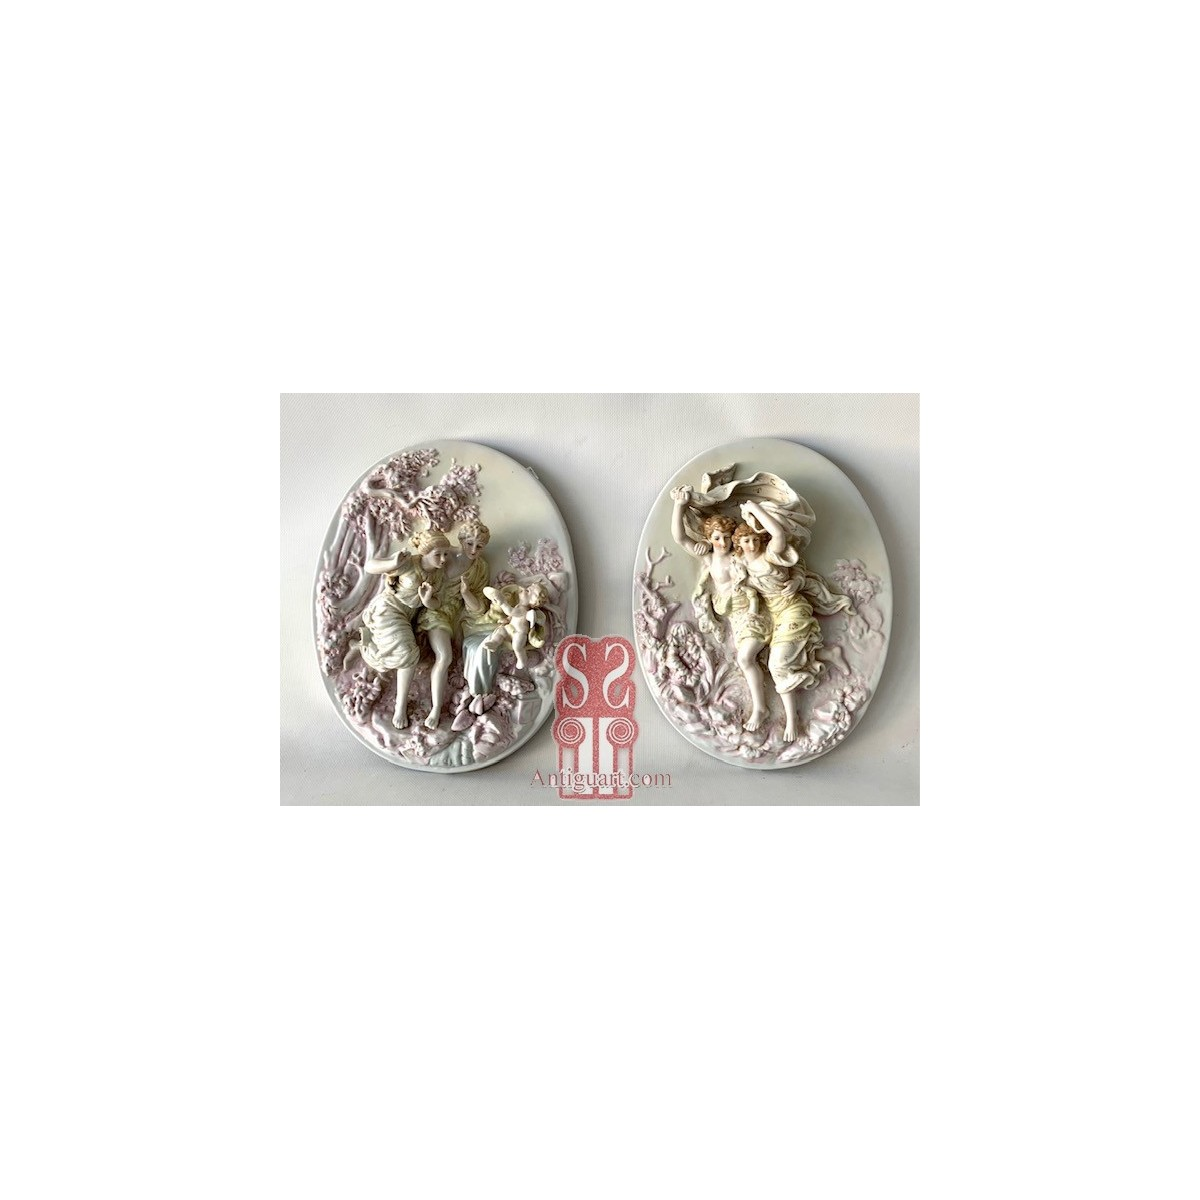 Pair of oval high-reliefs in Meissen porcelain